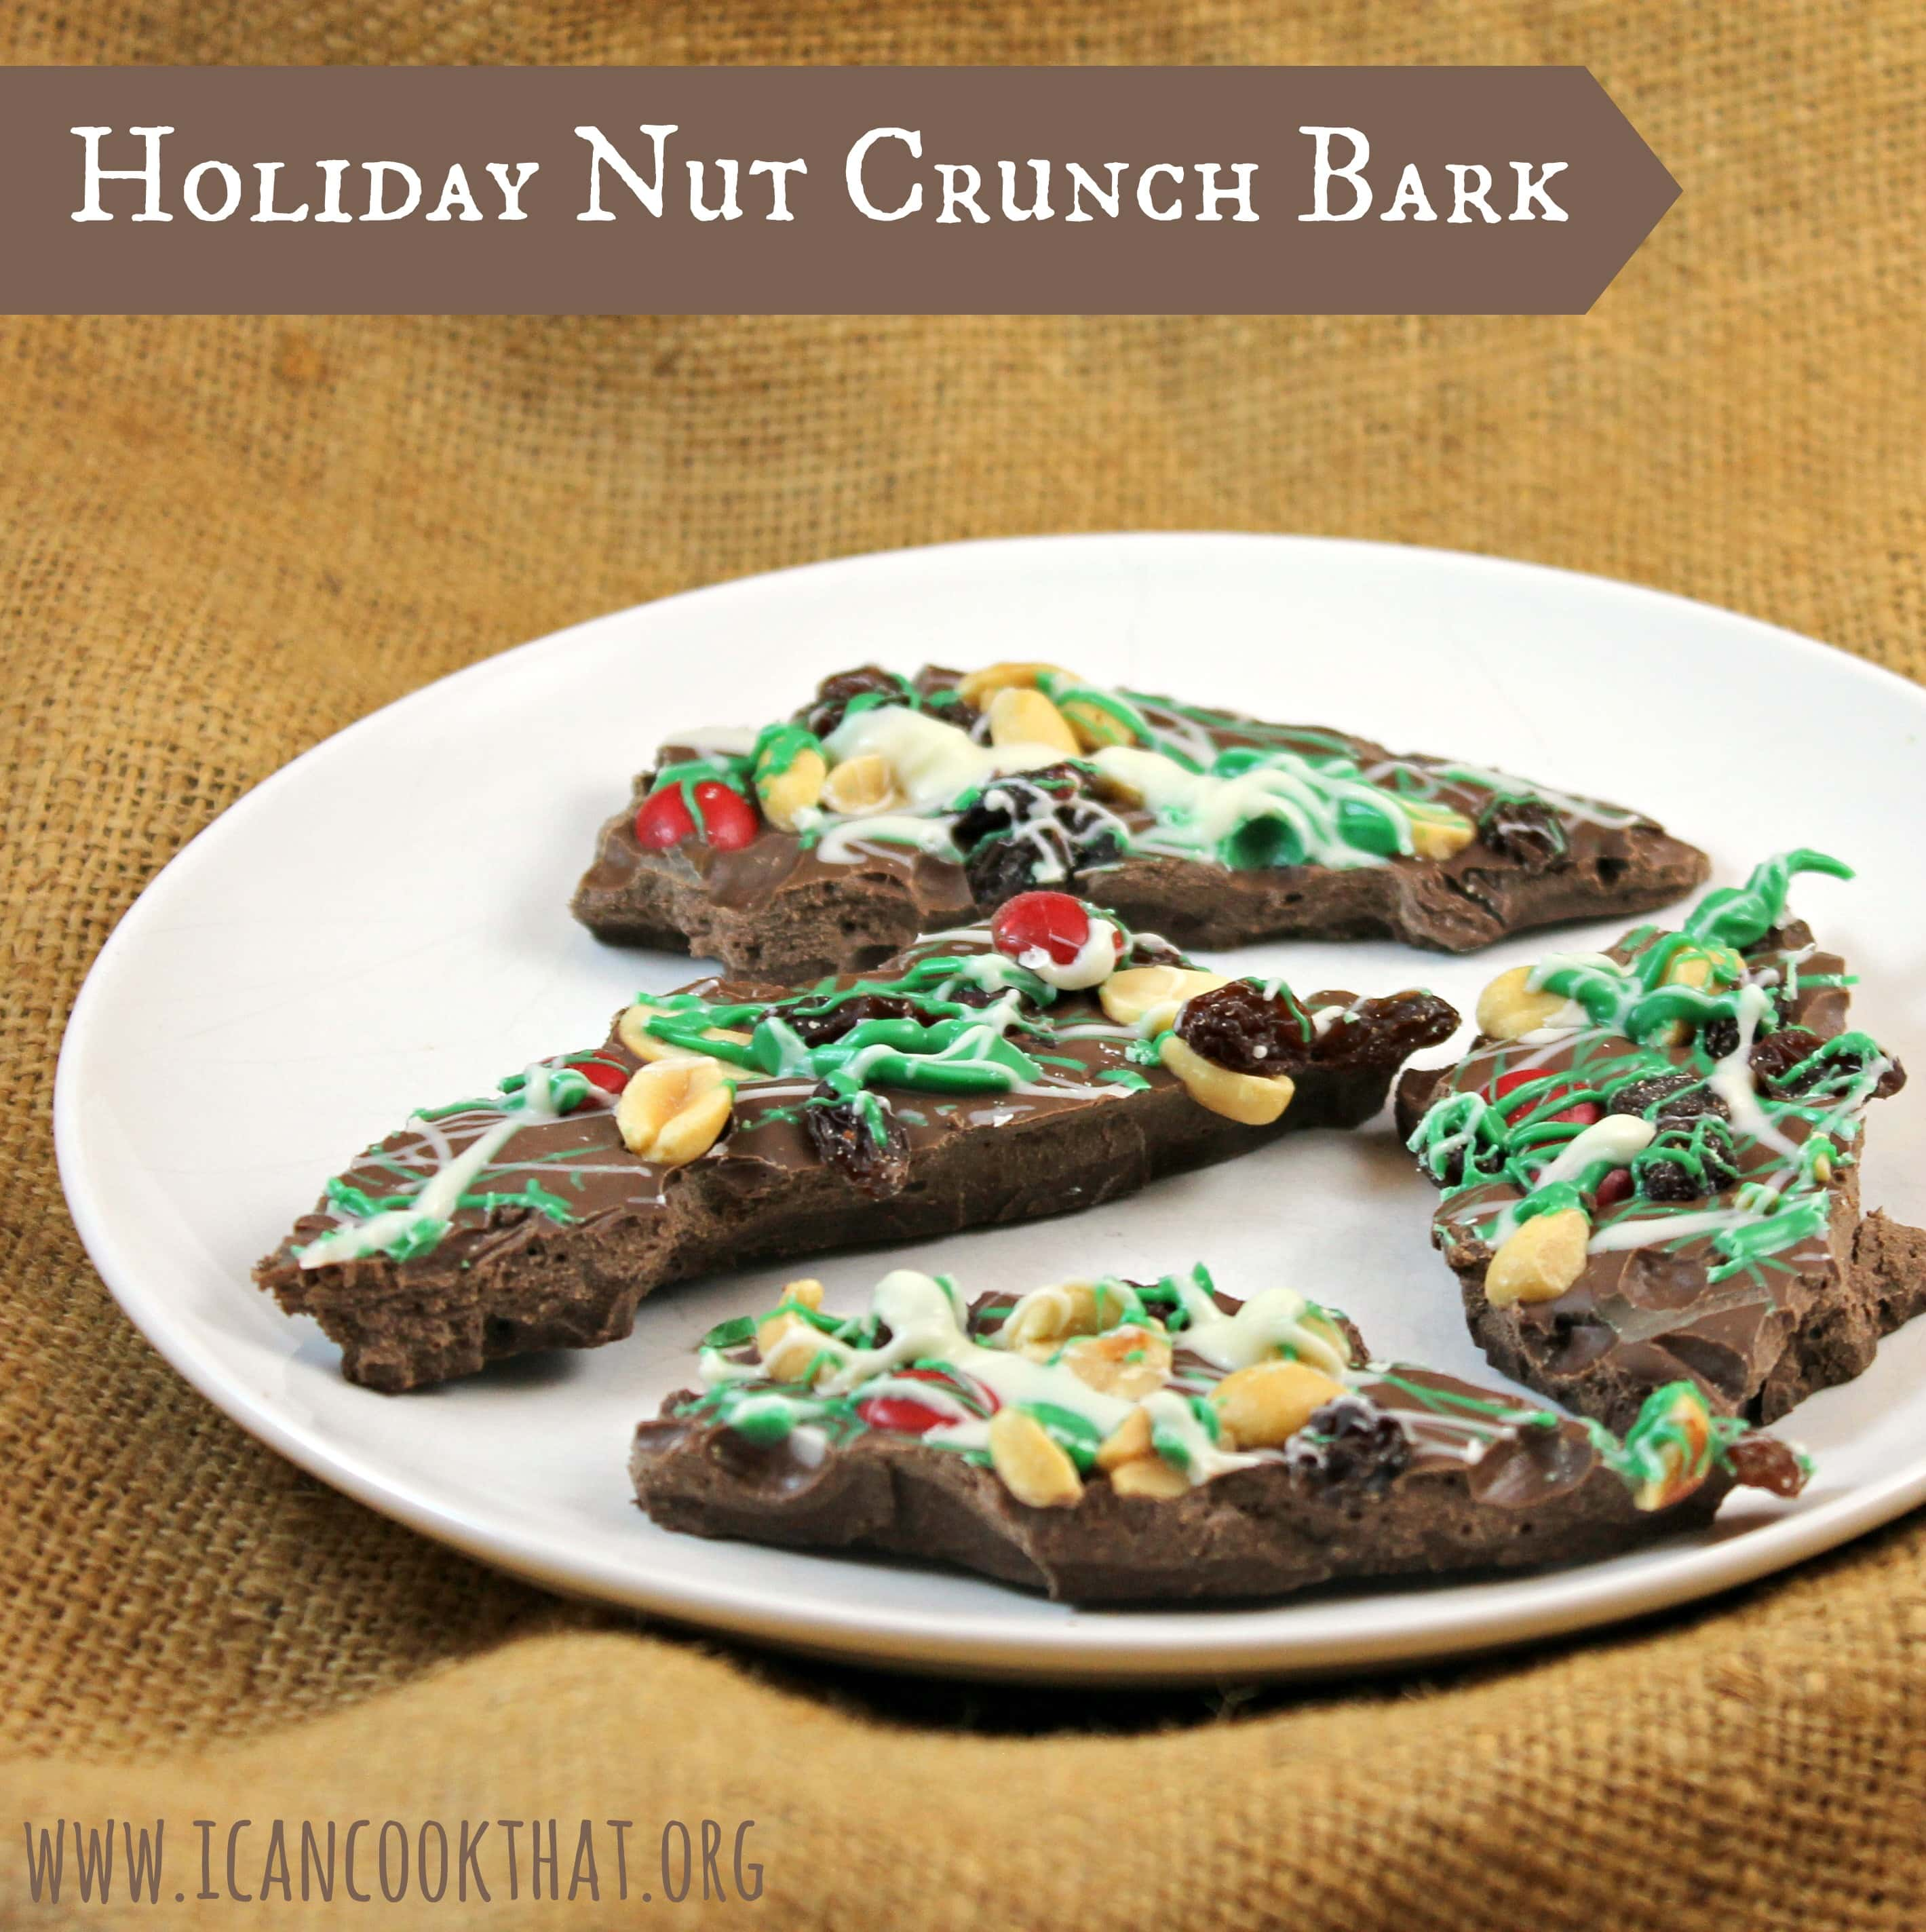 Holiday Nut Crunch Bark Recipe Gonutsfornuts I Can Cook That